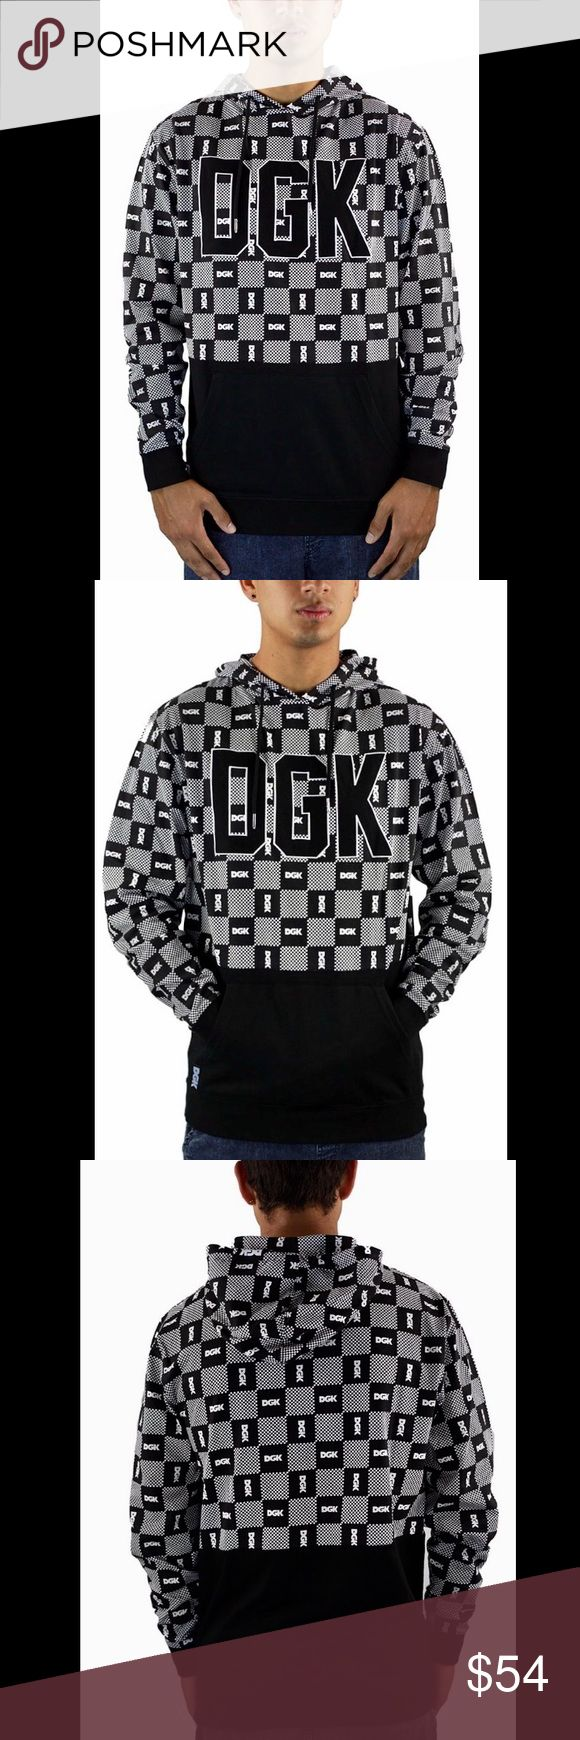 DGK Custom Checker Hooded Knit DGK Custom Checker Hooded Knit: Stand out on the streets with a black and Heather Grey DGK logo checker bring upper and grey lower body and a grey DGK applique on the chest of big style. Logo applique on the chest, adjustable drawstring hood, DGK logo patch on the lower front, kangaroo pouch pocket, made from 100% cotton, imported, in excellent condition, and still in original packaging. Shirts Sweatshirts & Hoodies